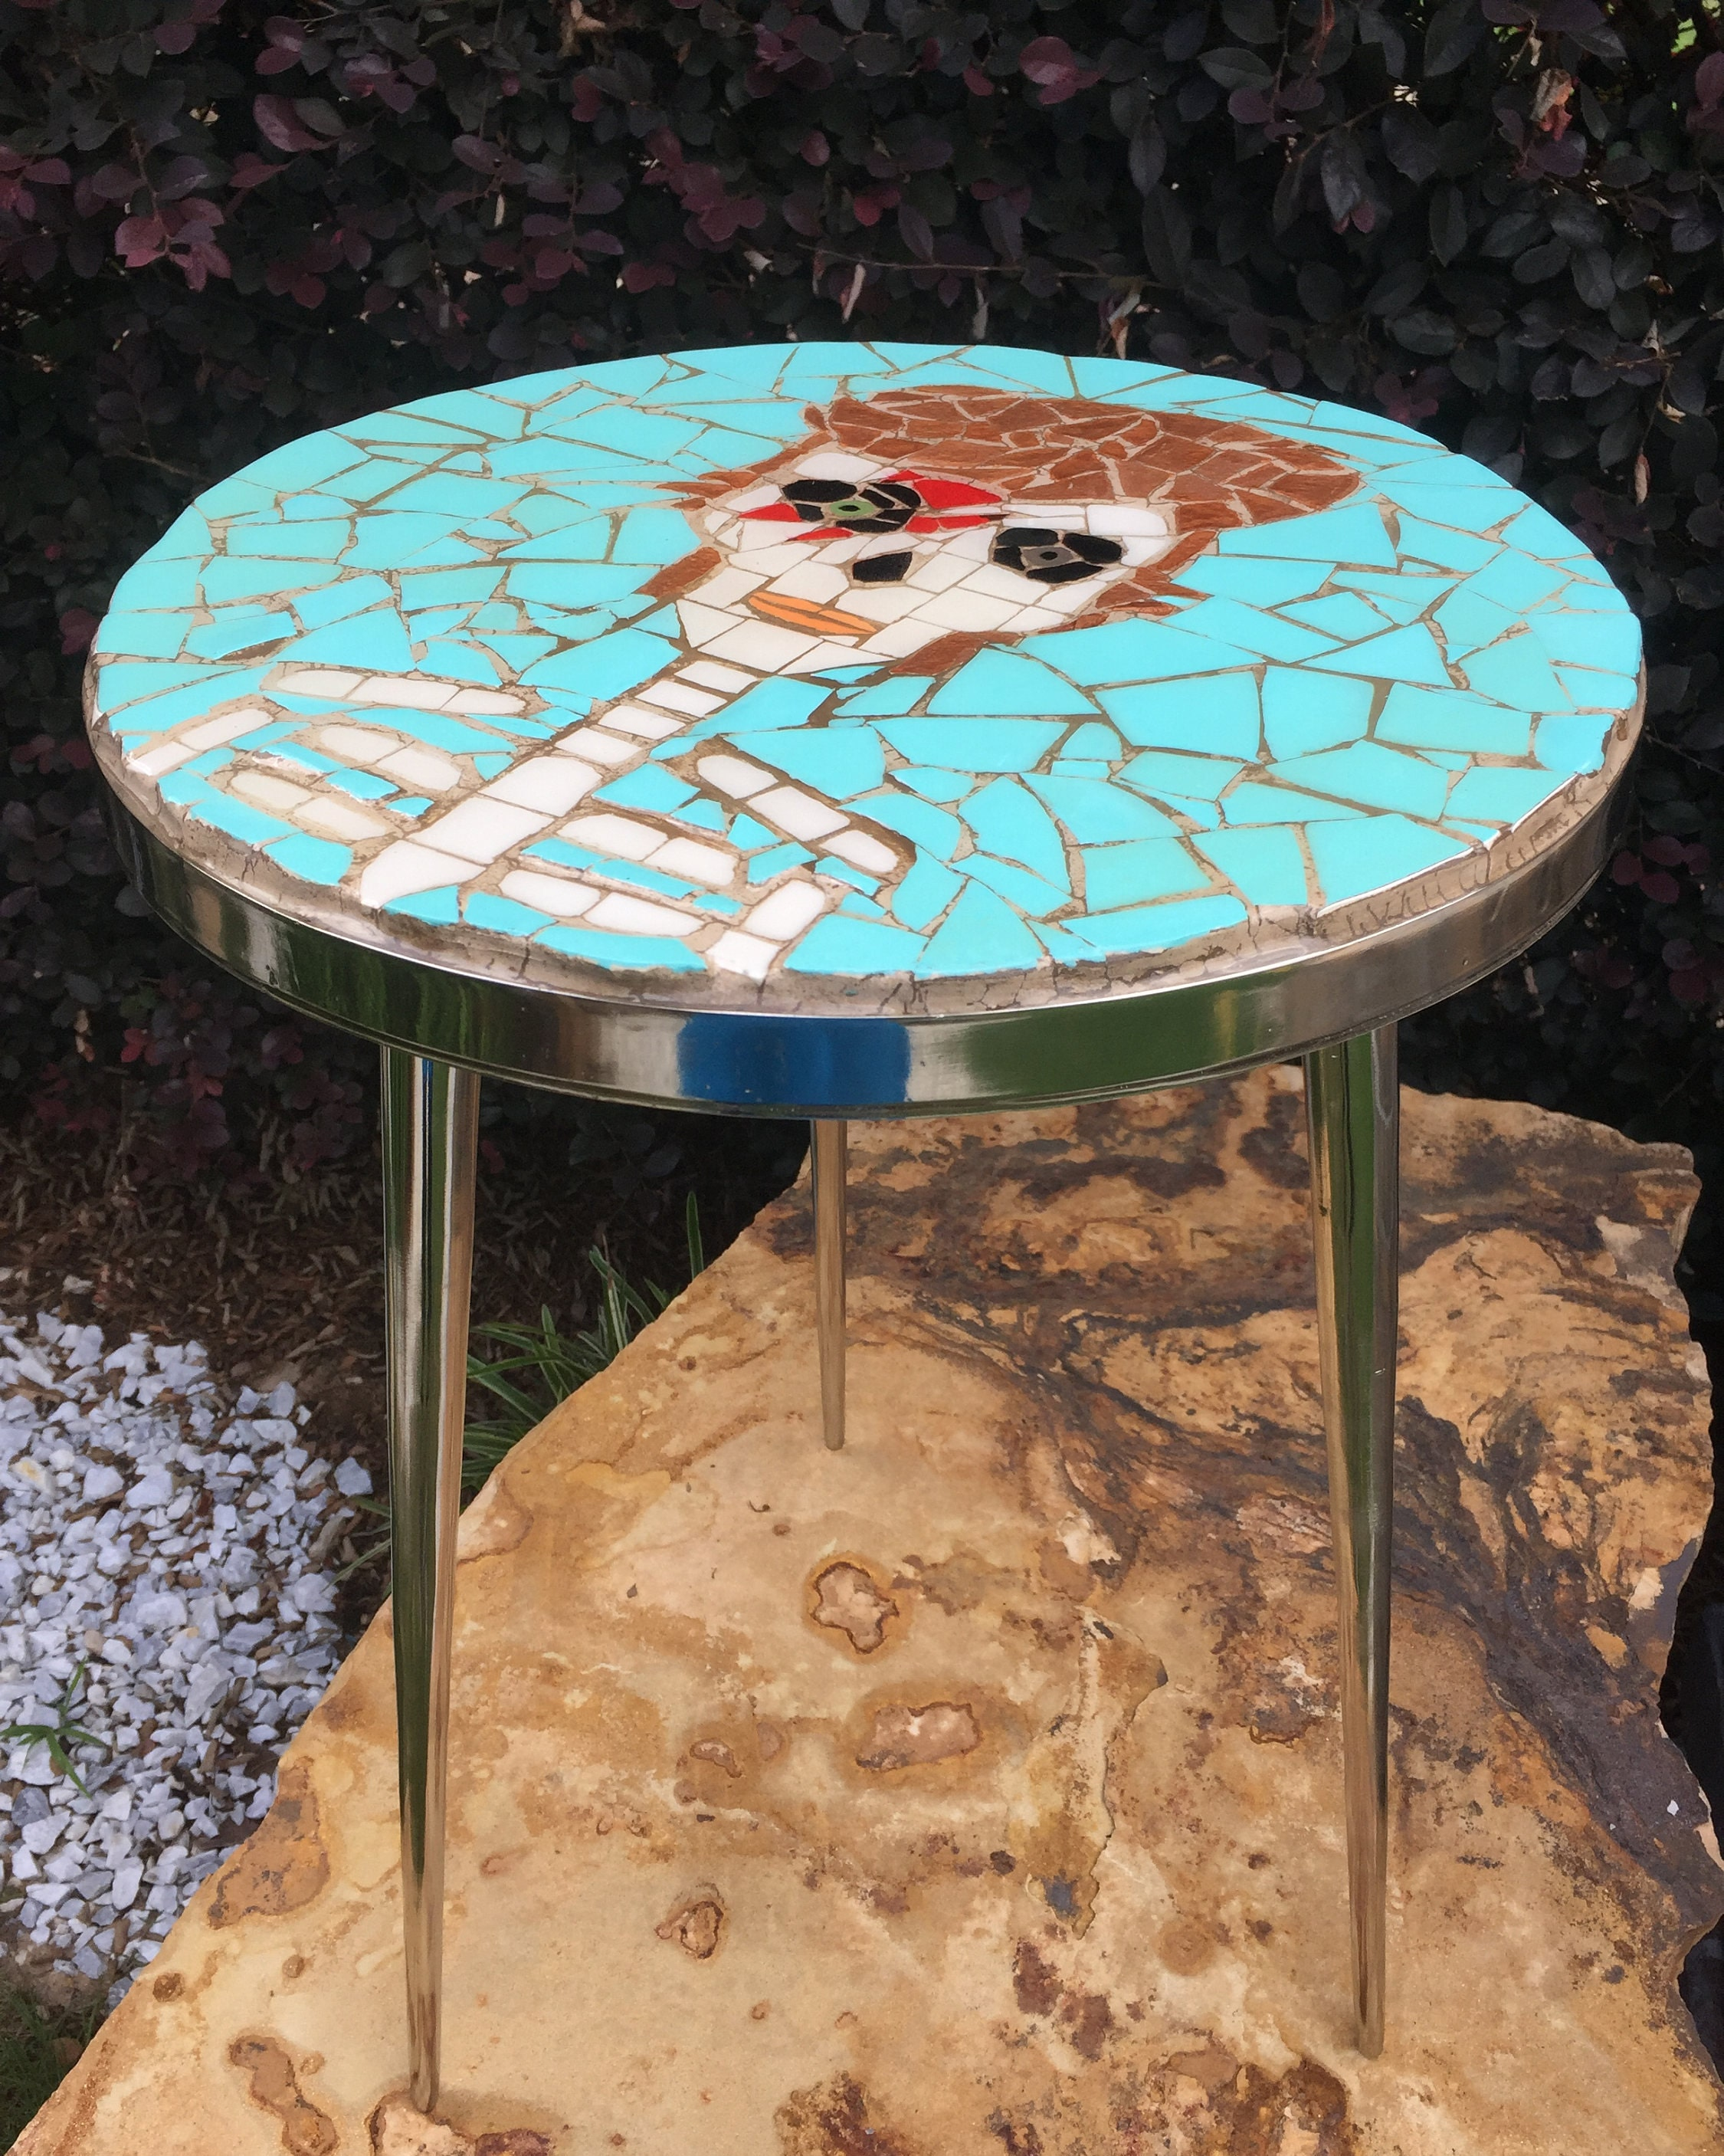 Bowie David Bowie Mosaic Table Contemporary tables Round